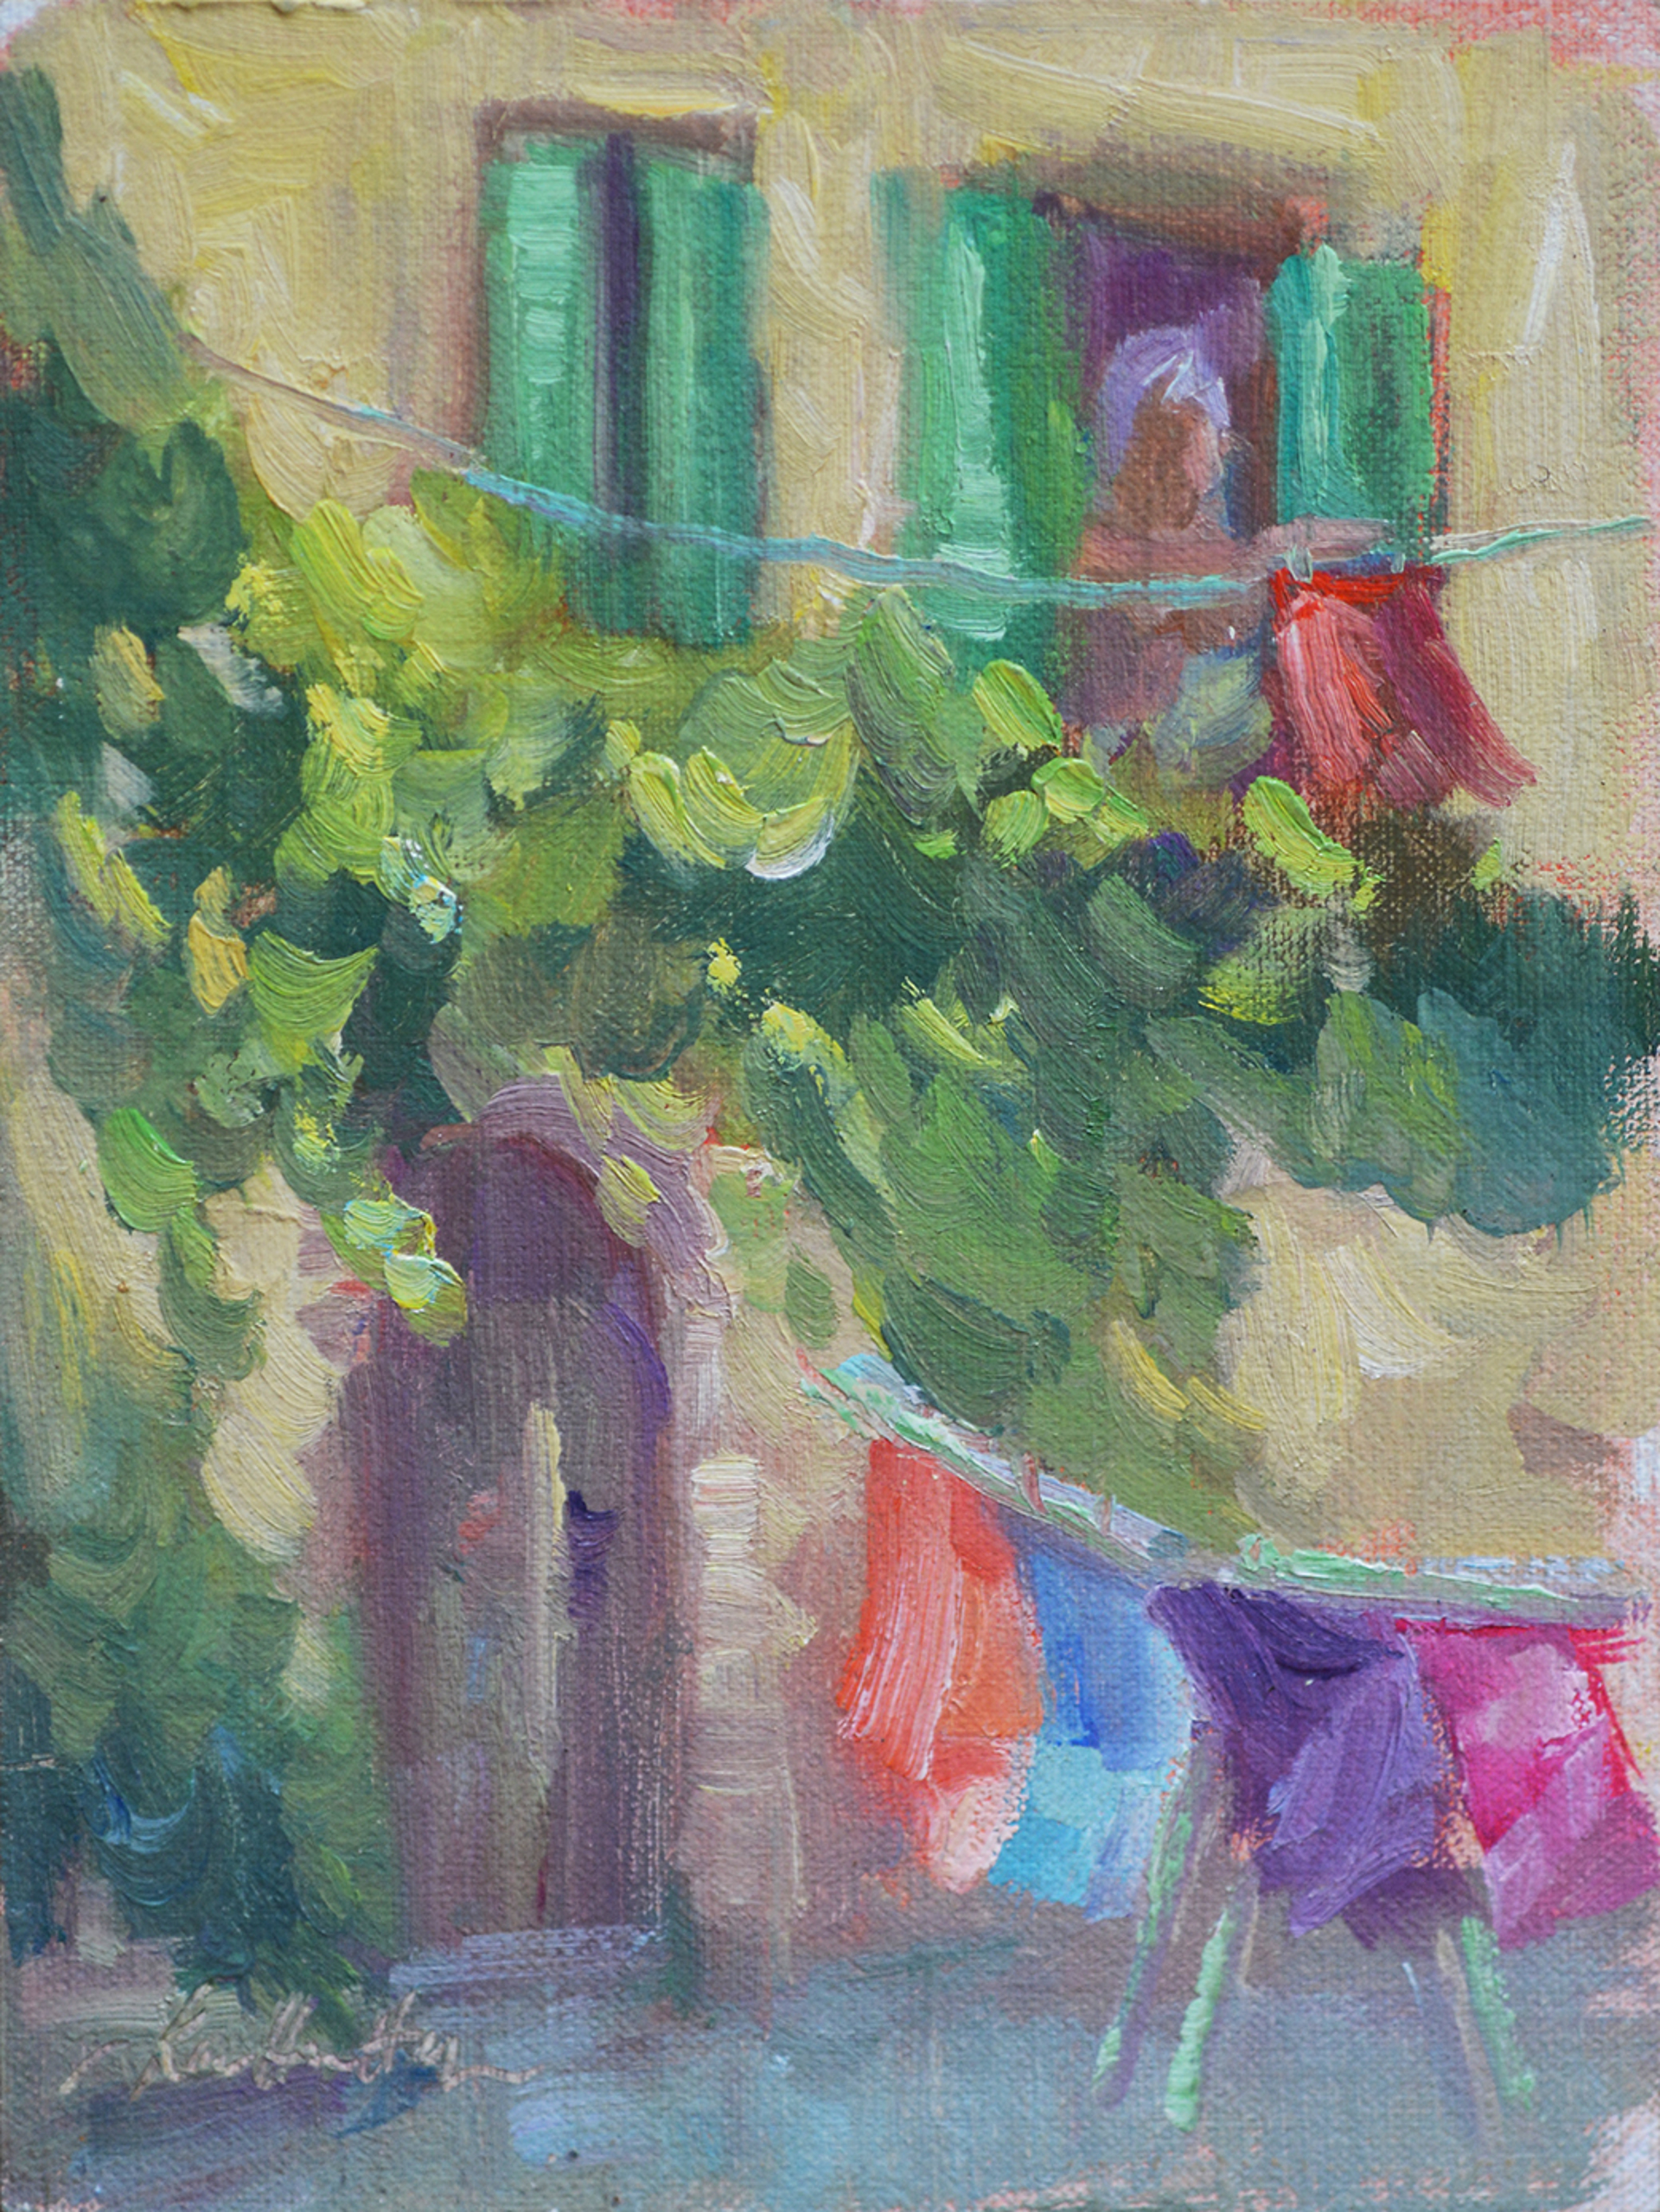 Lady in the Window at San Giovanni d'Asso by Karen Hewitt Hagan